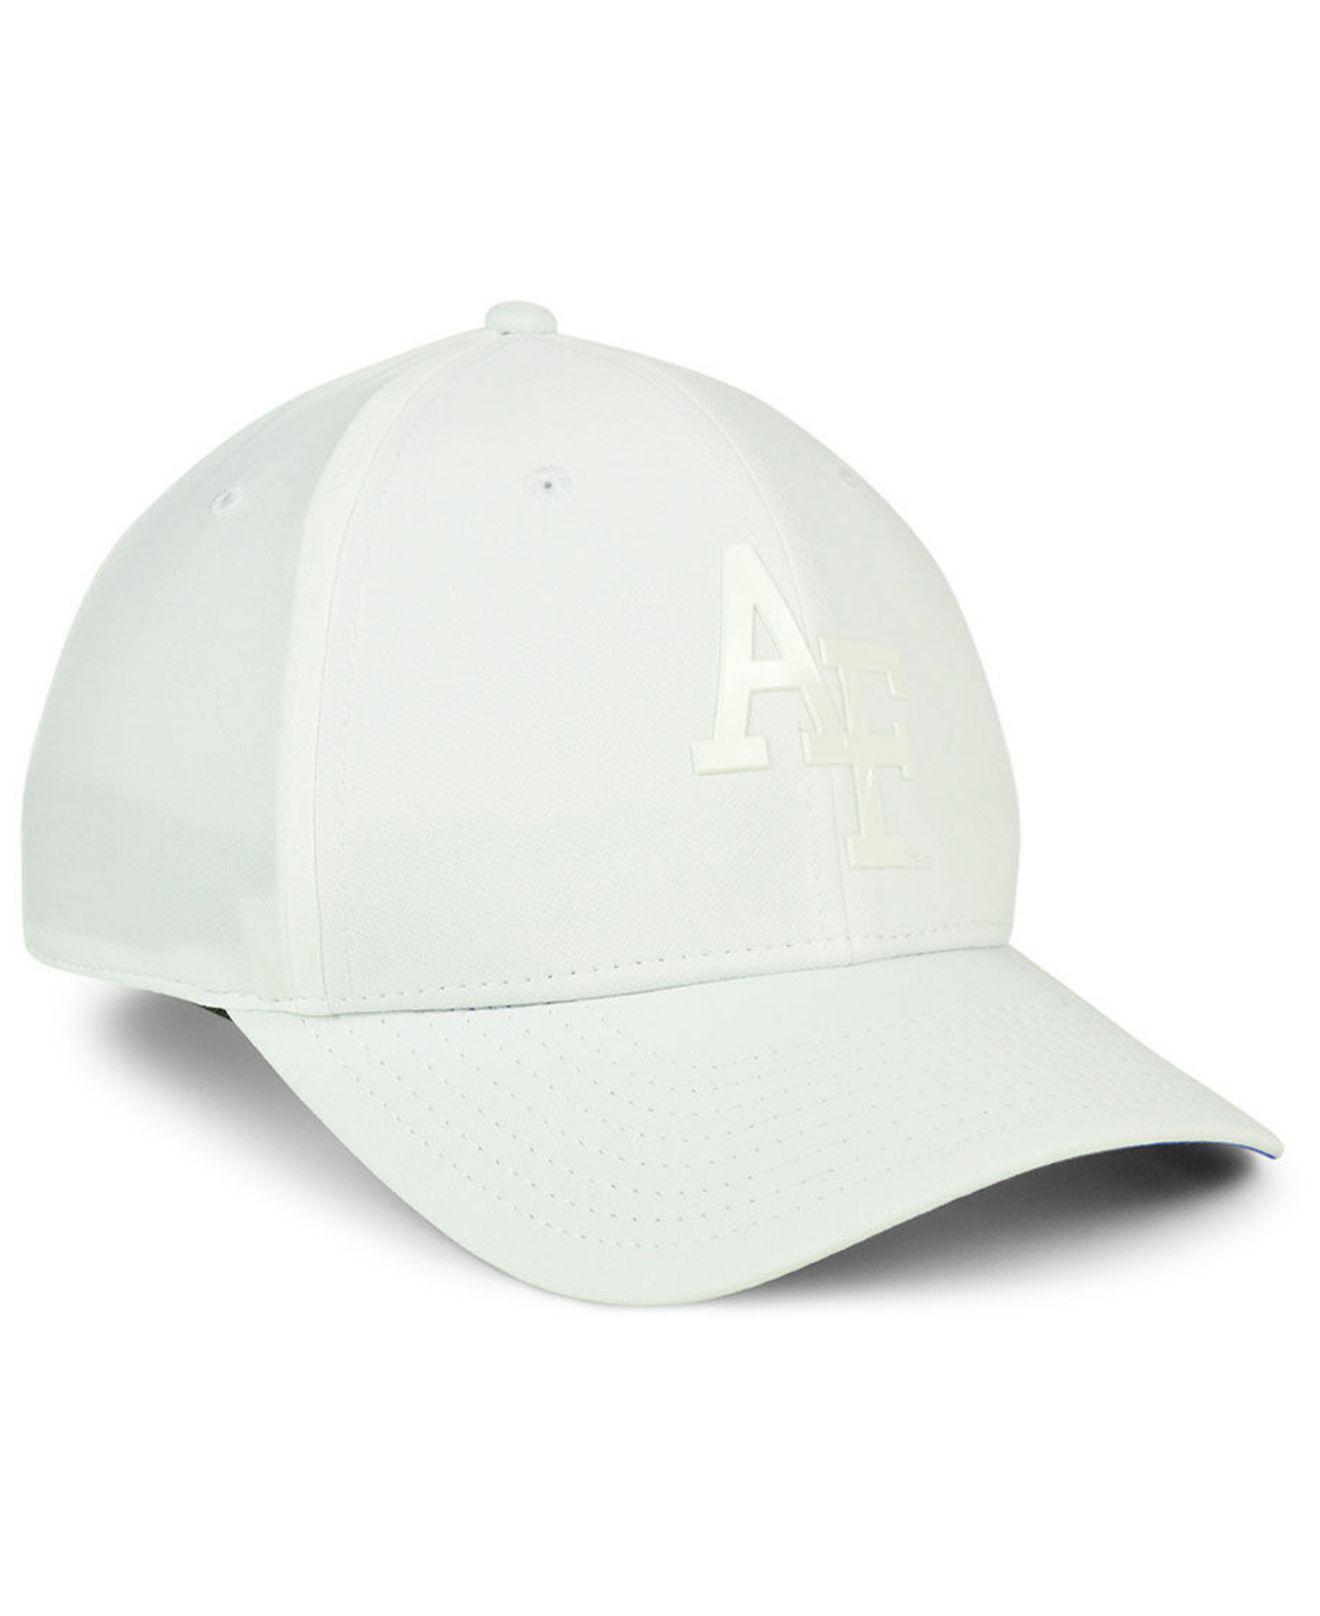 brand new 528f1 fdf5b Lyst - Nike Air Force Falcons Col Cap in White for Men